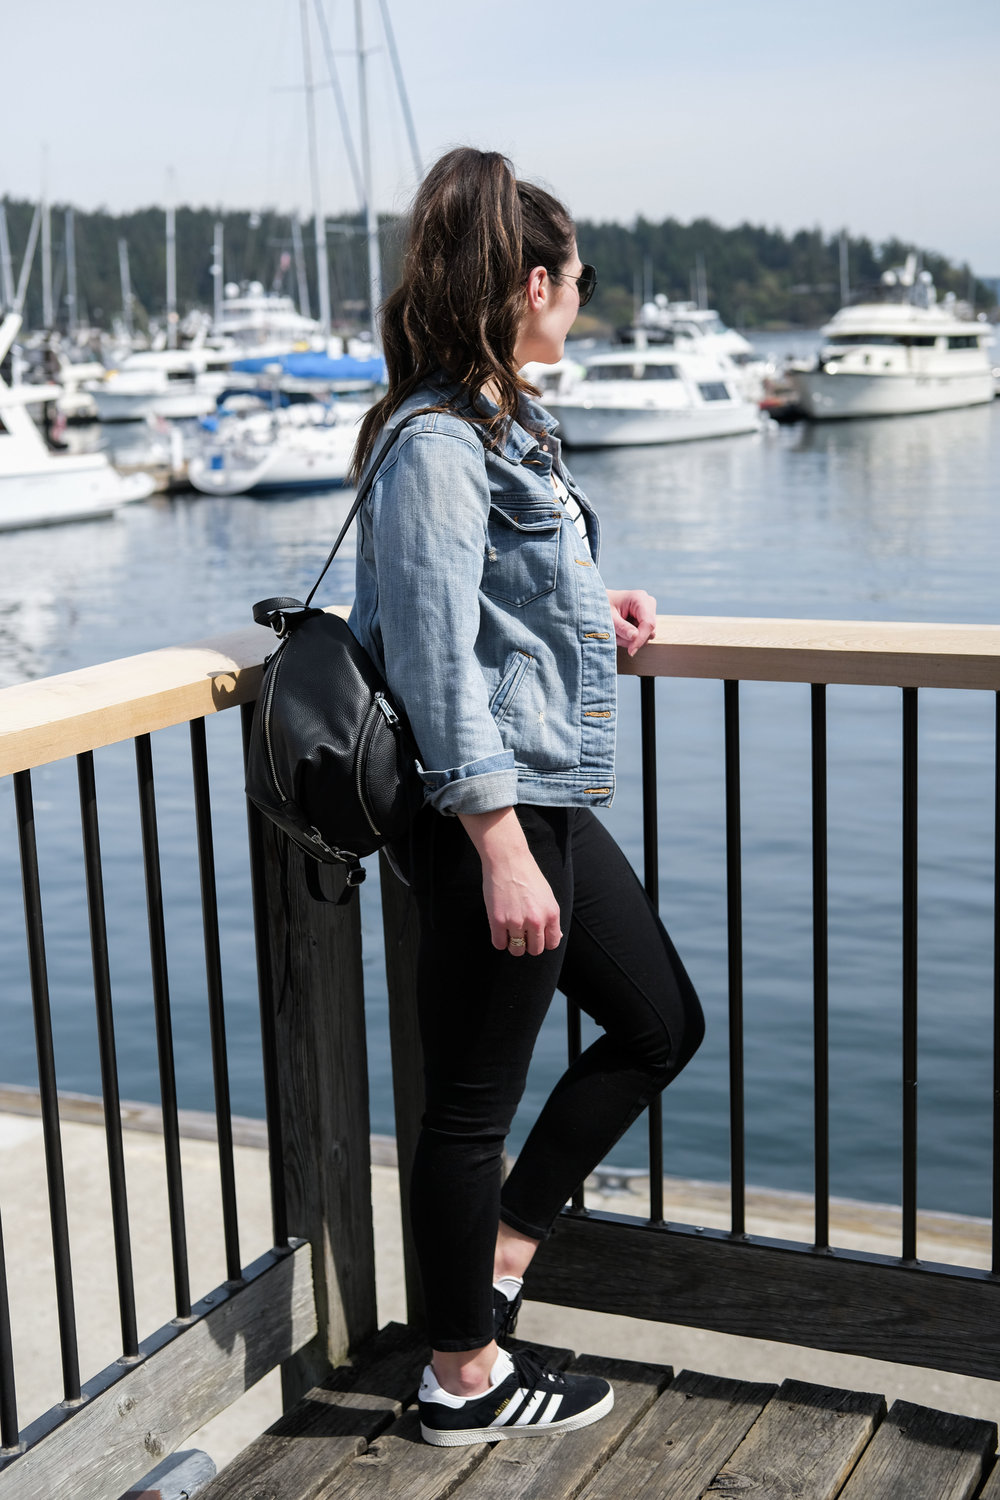 San Juan Islands Washington.  What to do for a weekend in the San Juan Islands.  Places to stay and eat on Orcas Island and Friday Harbor. Rebecca Minkoff medium Julian backpack, black skinny jeans, Adidas sneakers, and J.Crew denim jacket.